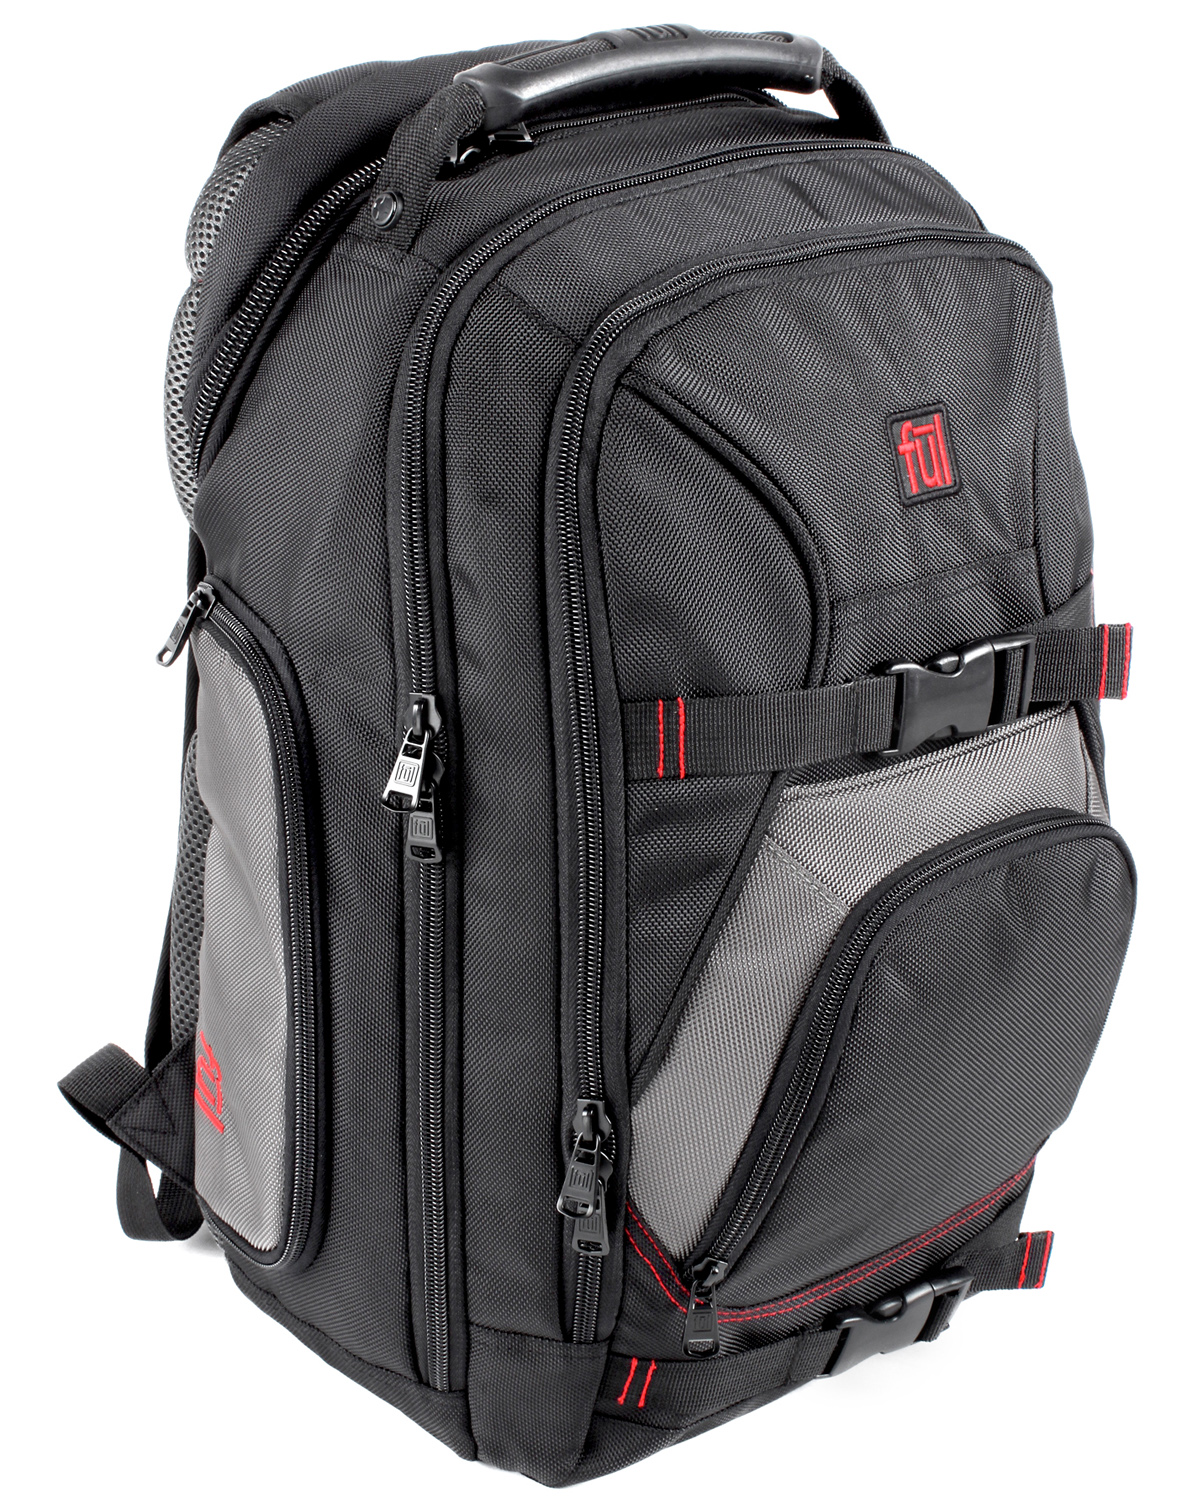 FUL BD5272 - Alleyway Wild Fire Backpack